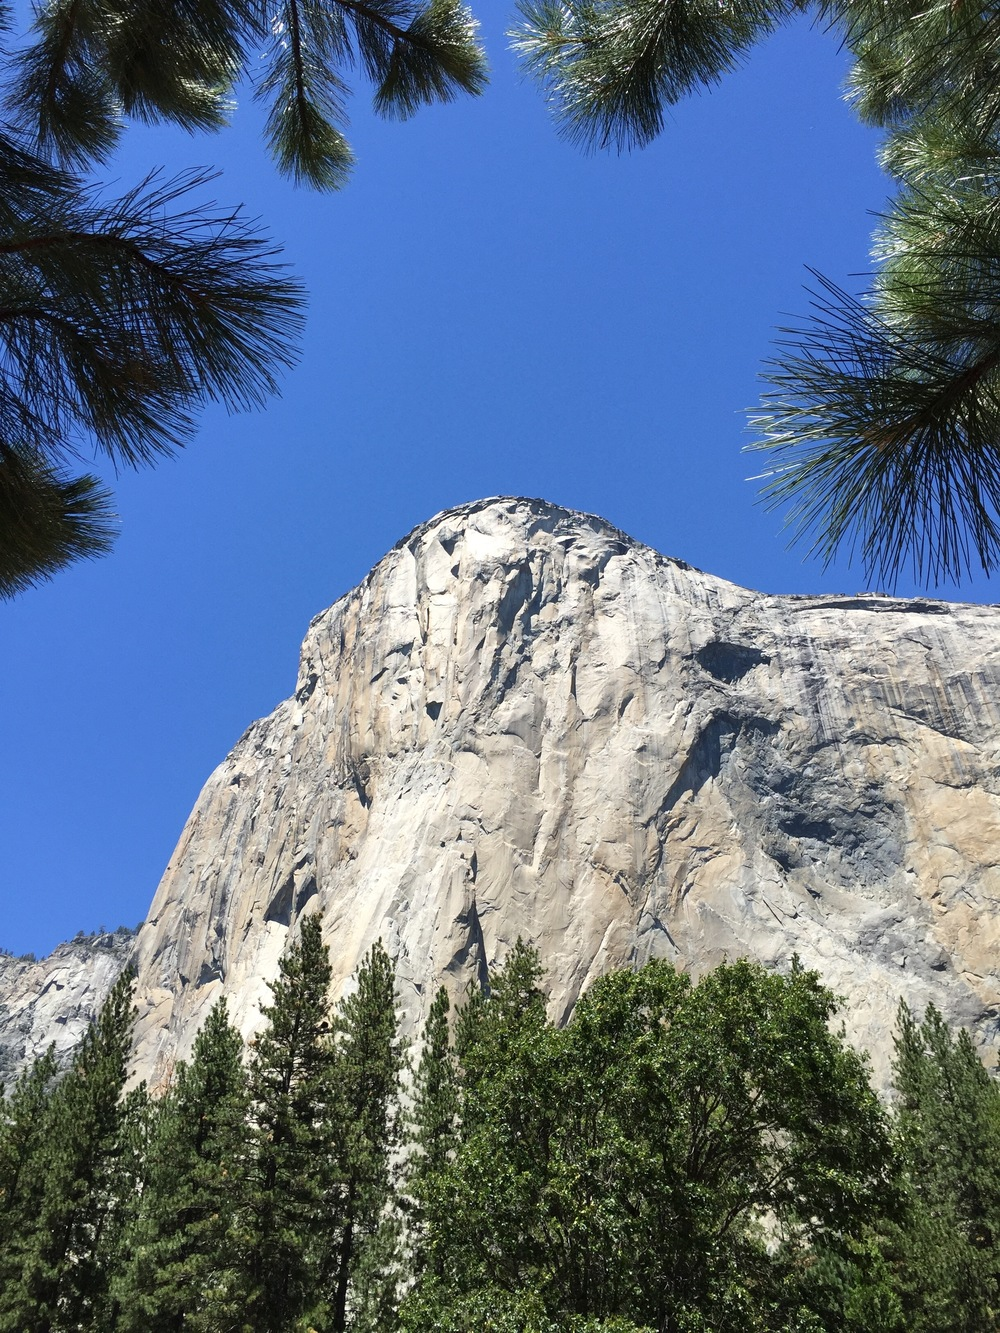 El Capitan. No climbers on it this day - too hot.